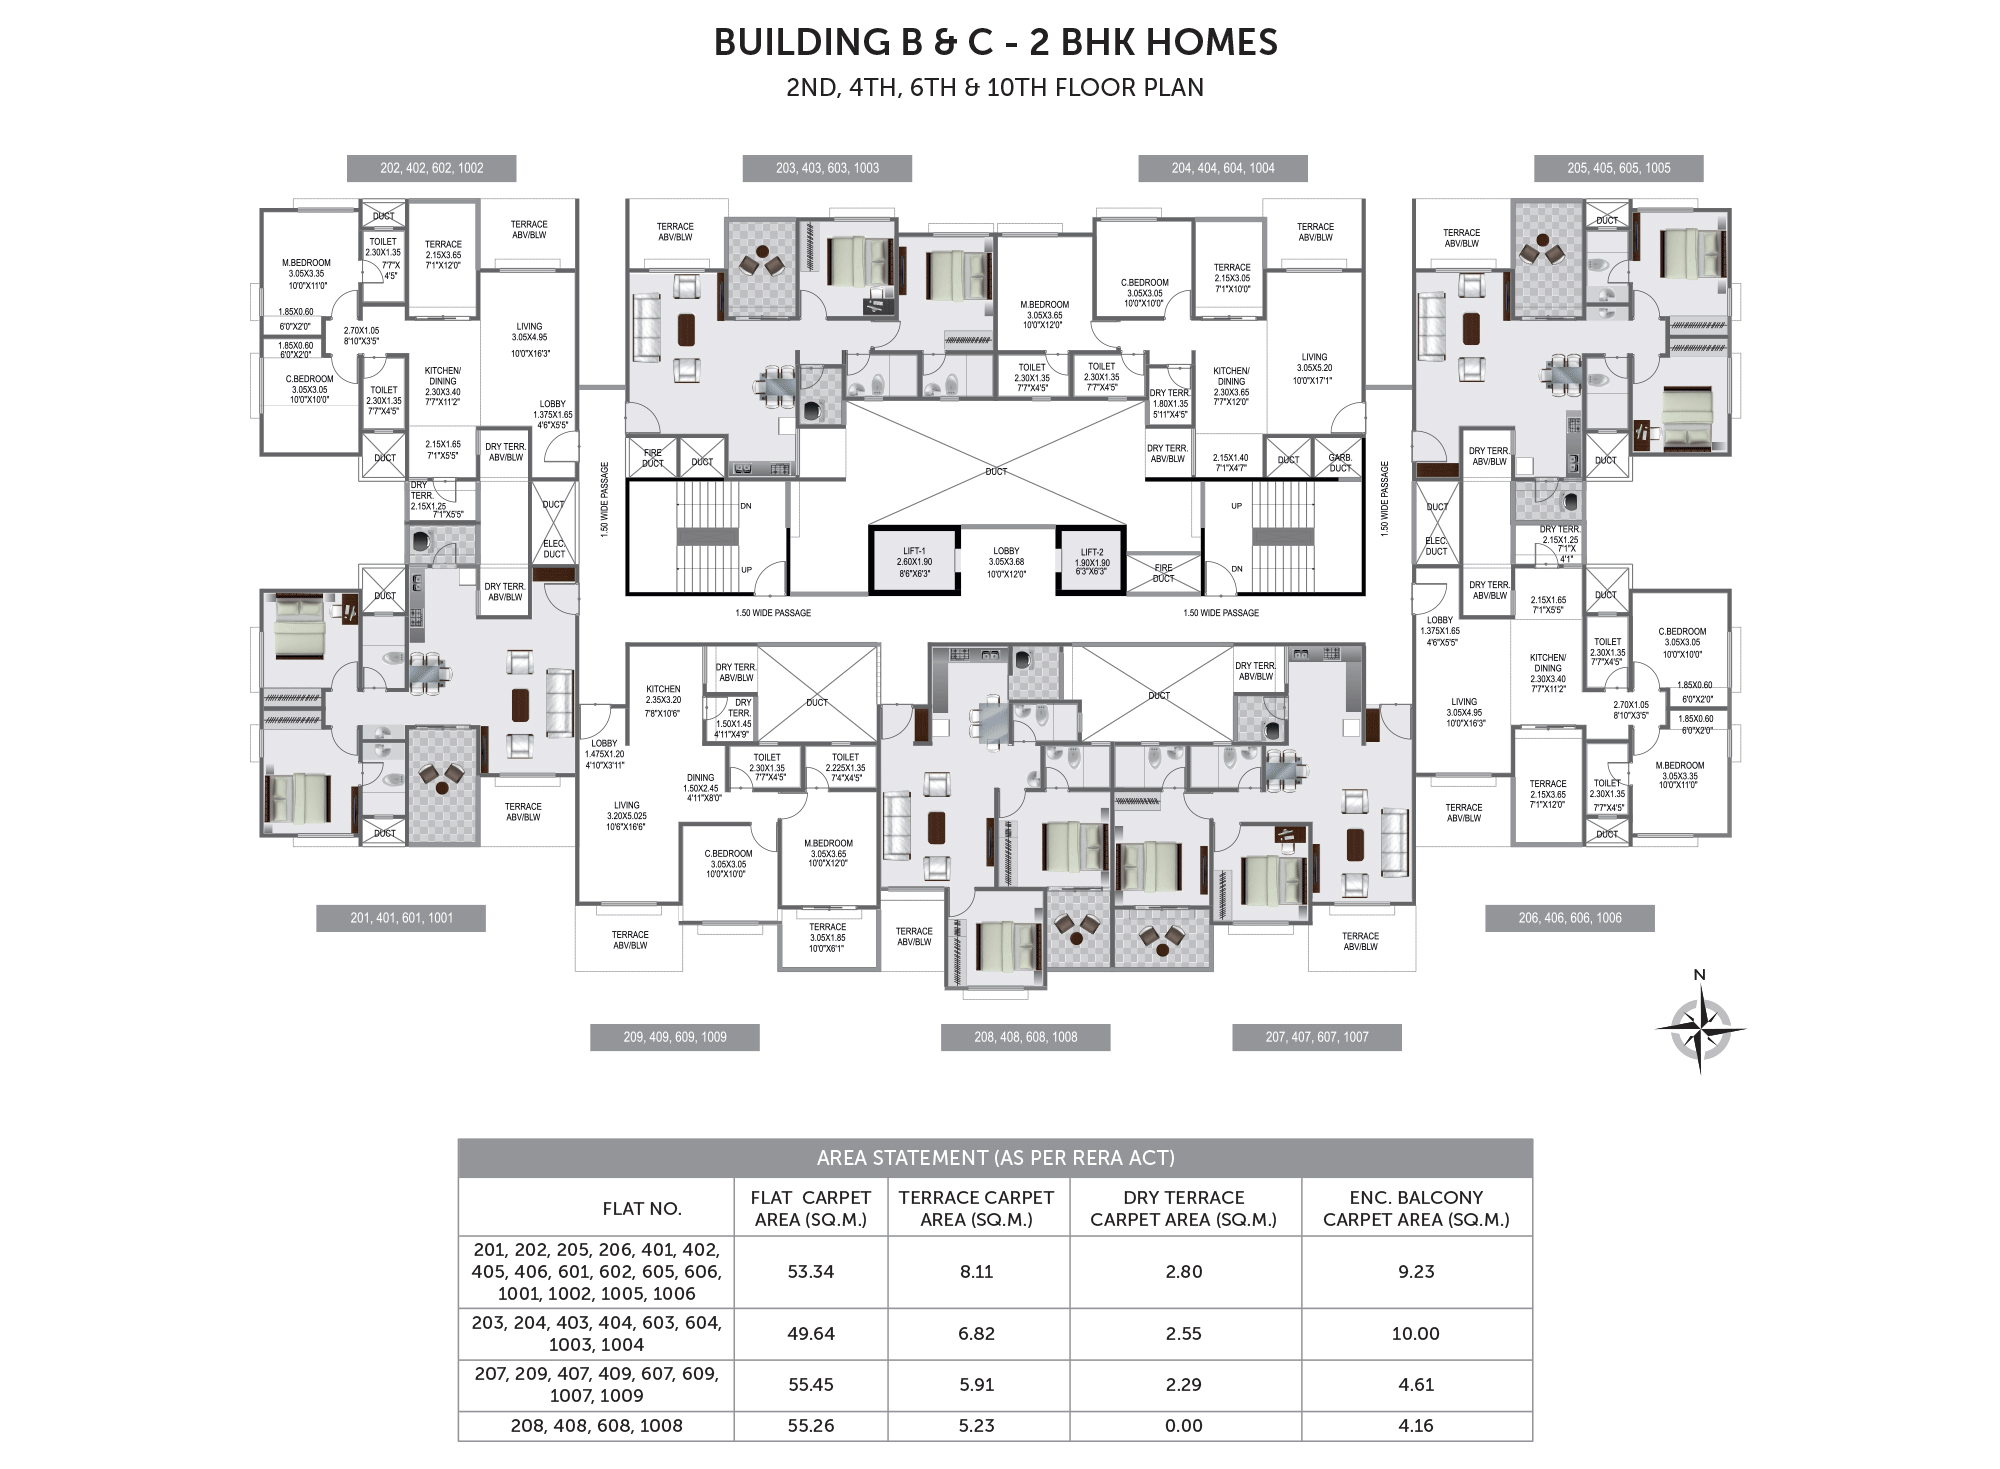 Pristine Prolife 3_Building B & C - 2ND, 4TH, 6TH & 10TH FLOOR PLAN